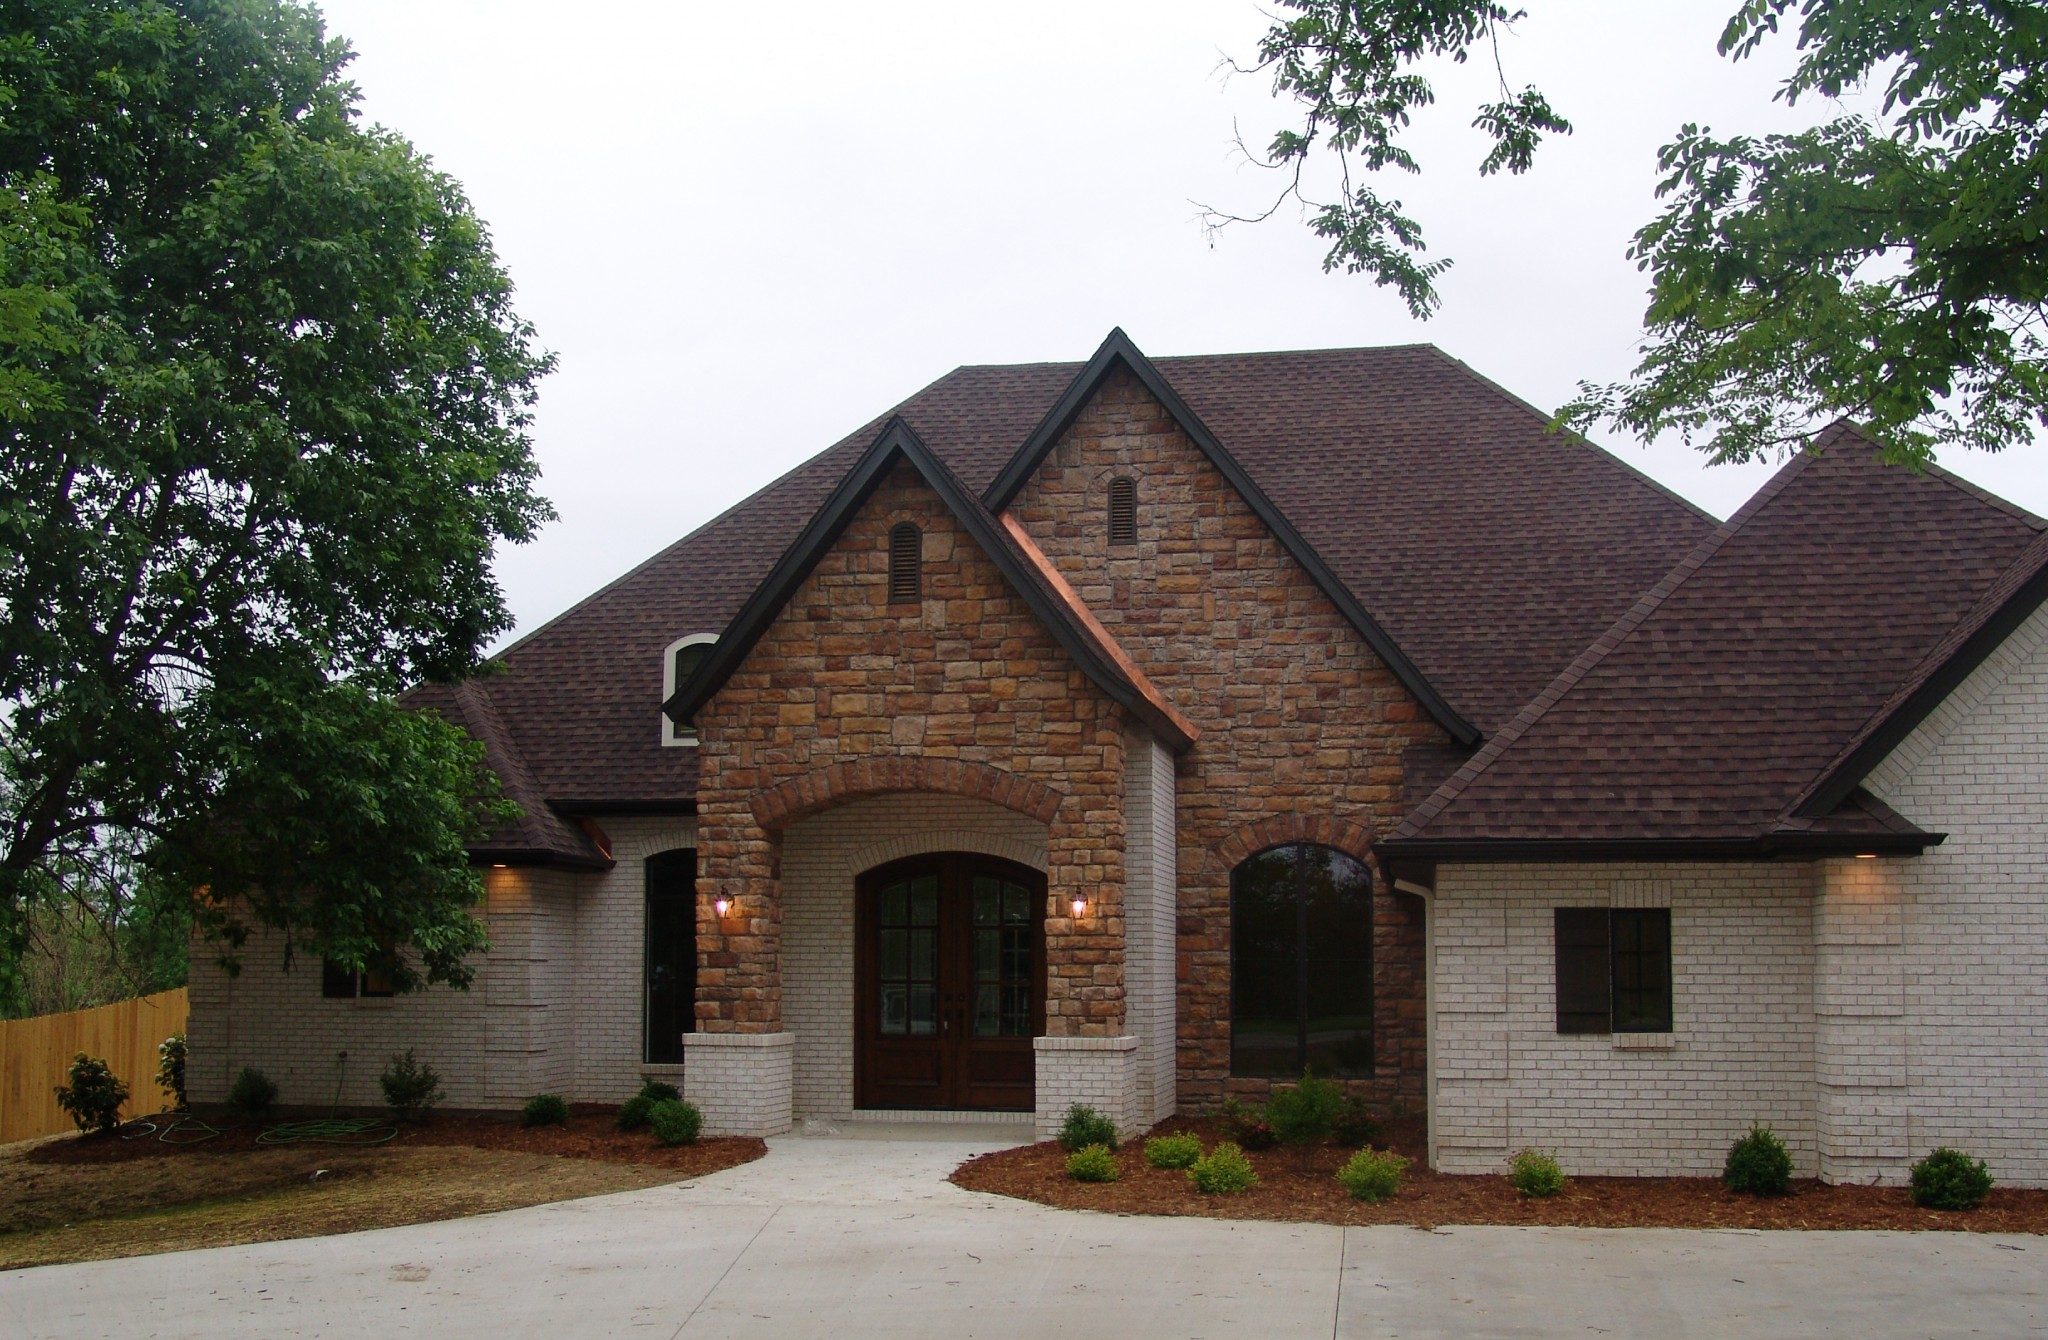 Residential Construction and Remodeling Services in Columbia, MO